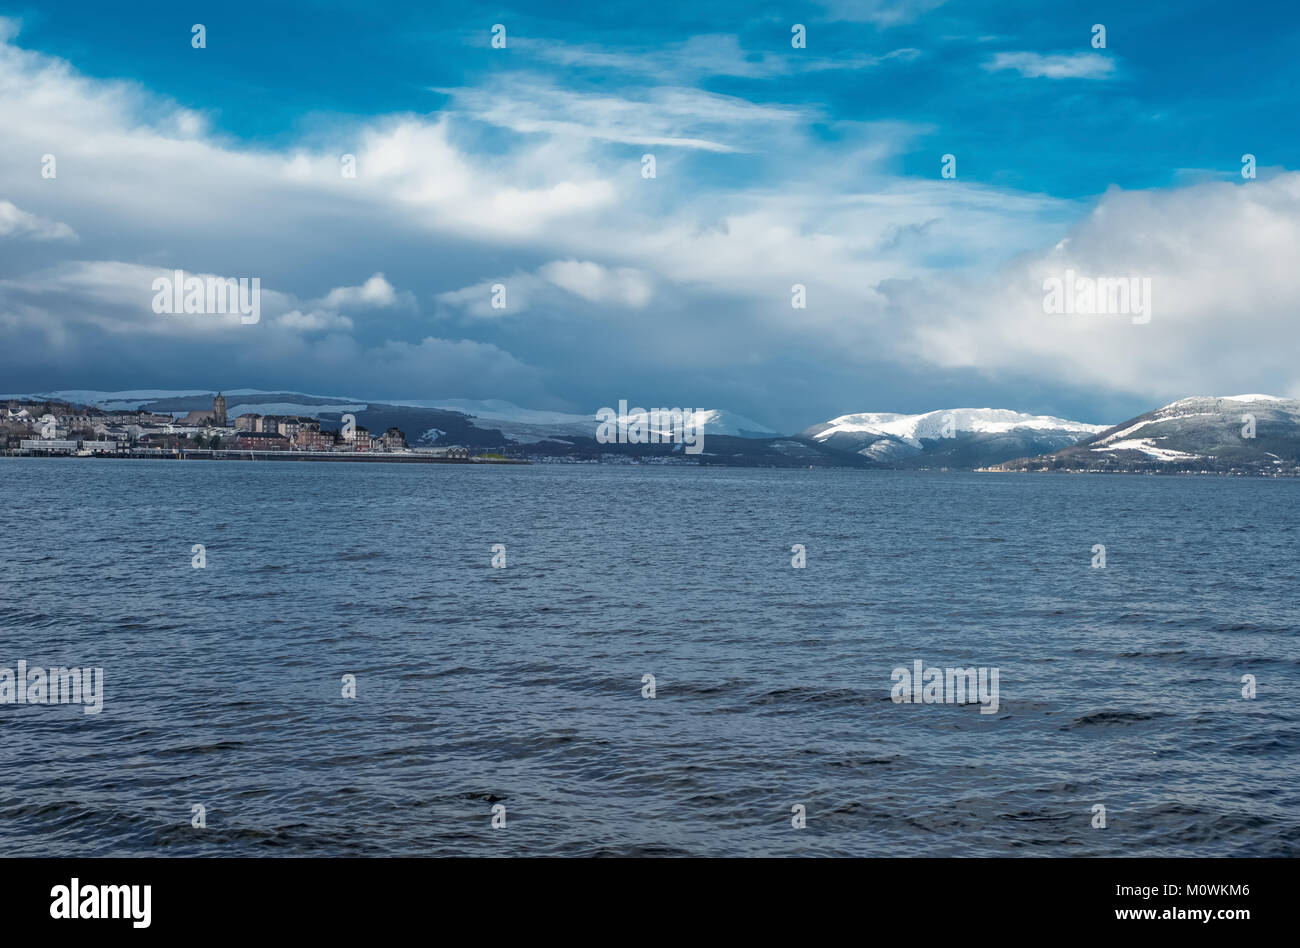 The town of Gourock in Inverclyde Scotland looking out over the Bay to the snow covered hills and Gareloch beyond. - Stock Image